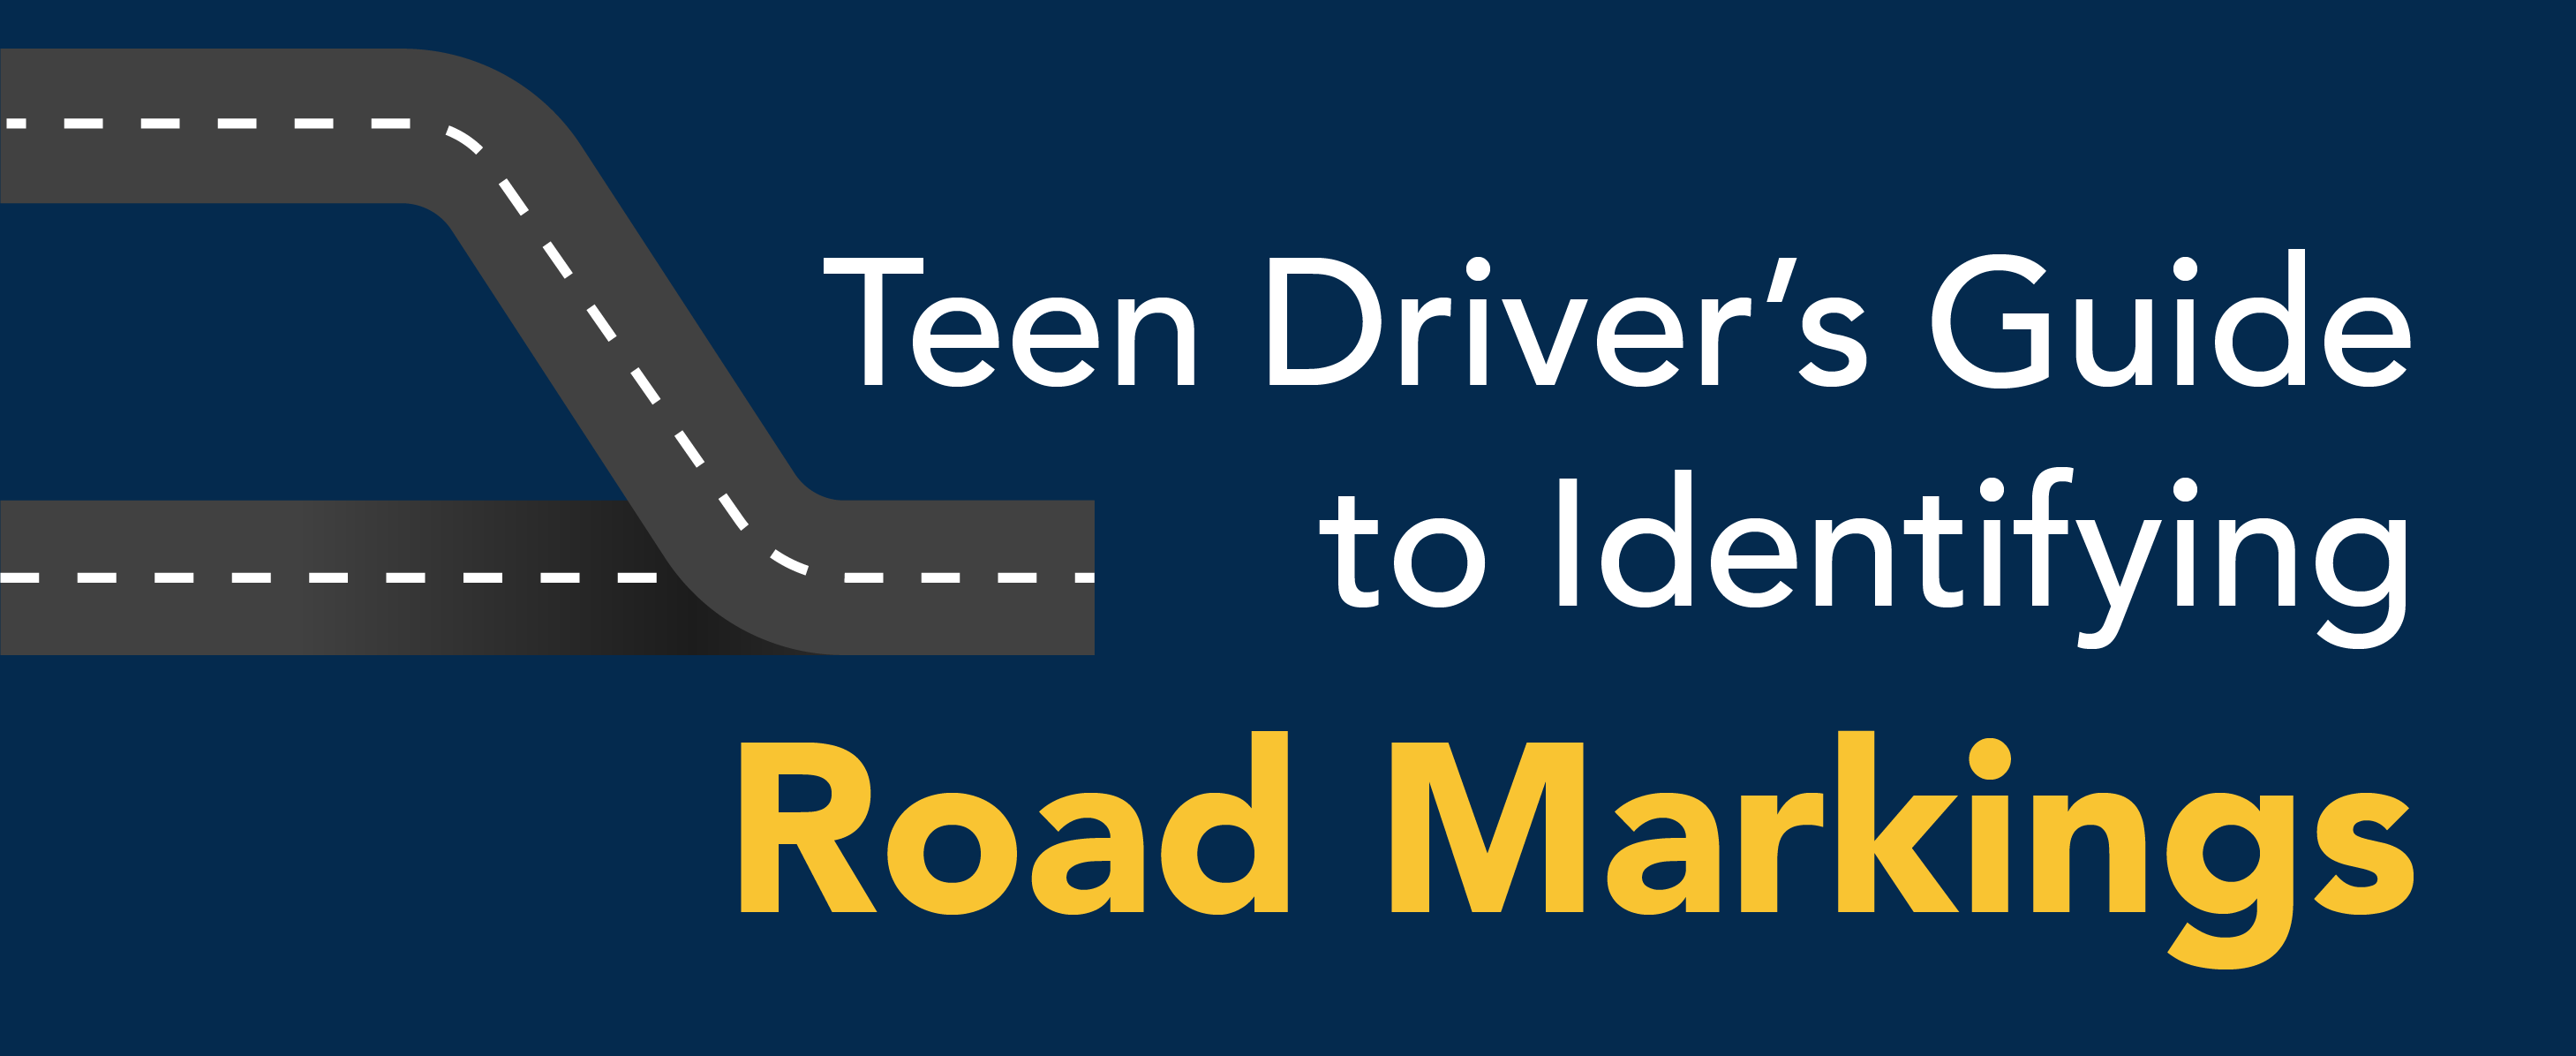 Teen driver's guide to identifying road markings